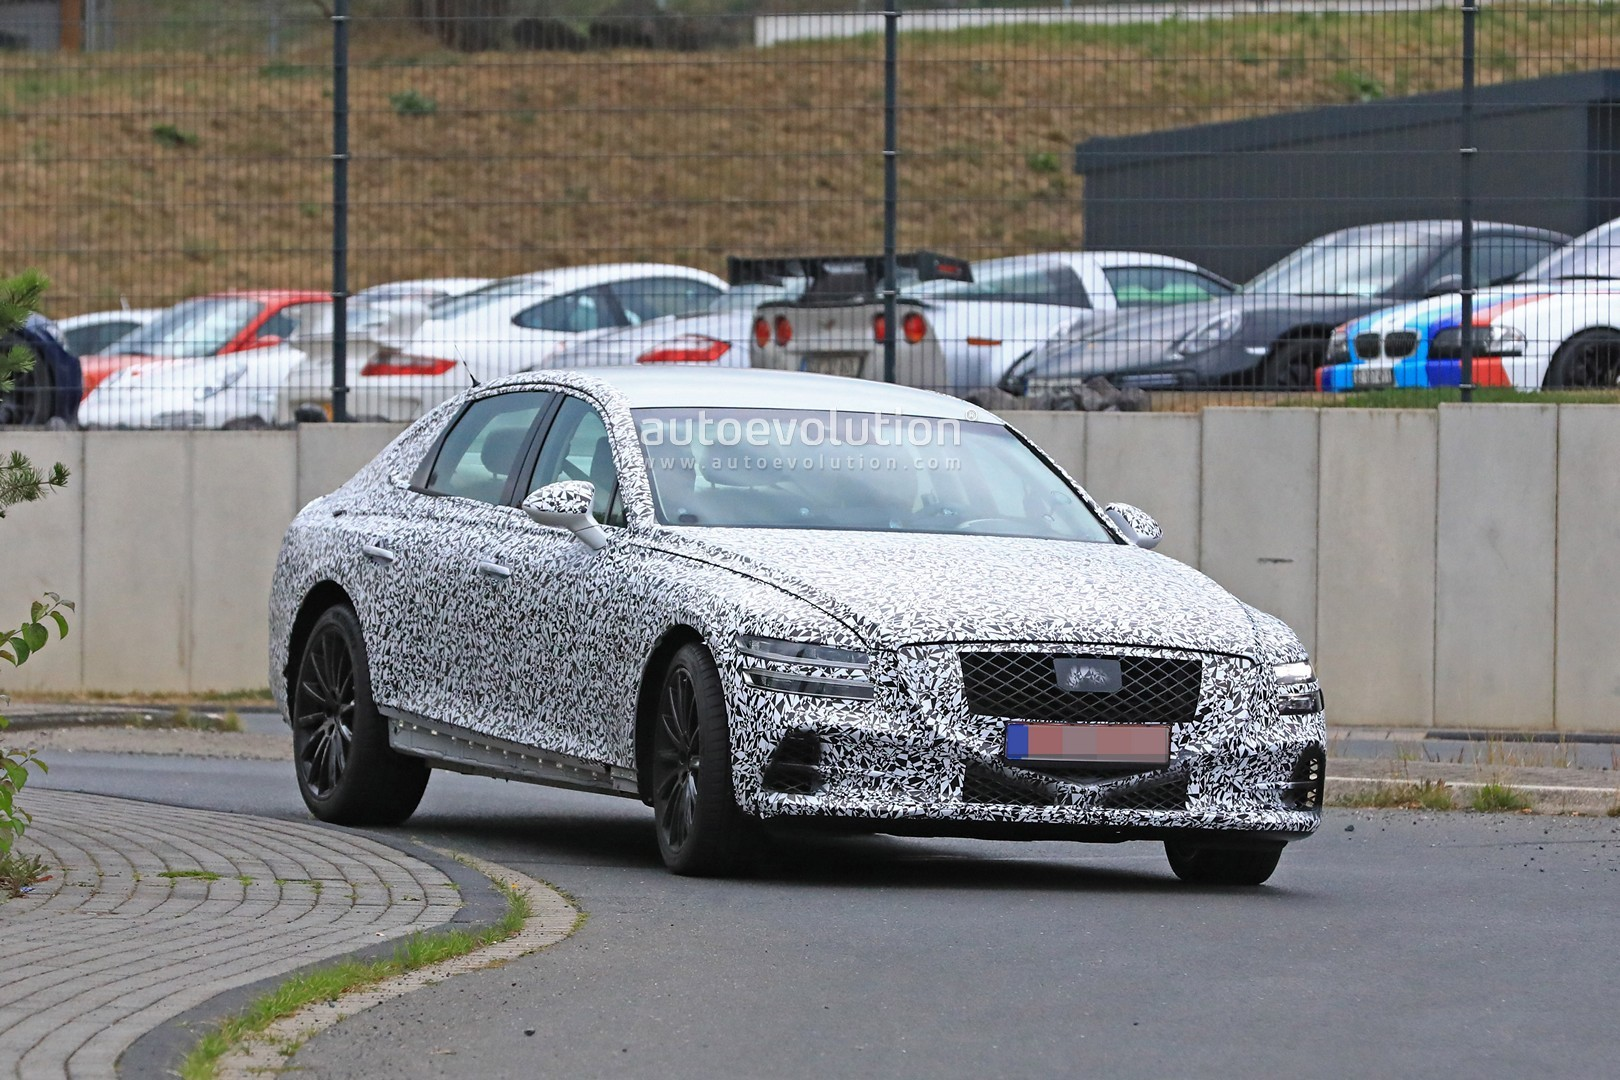 2020 Genesis G80 Drops More Camo at the Ring, Looks Better Than GV80 Concept - autoevolution